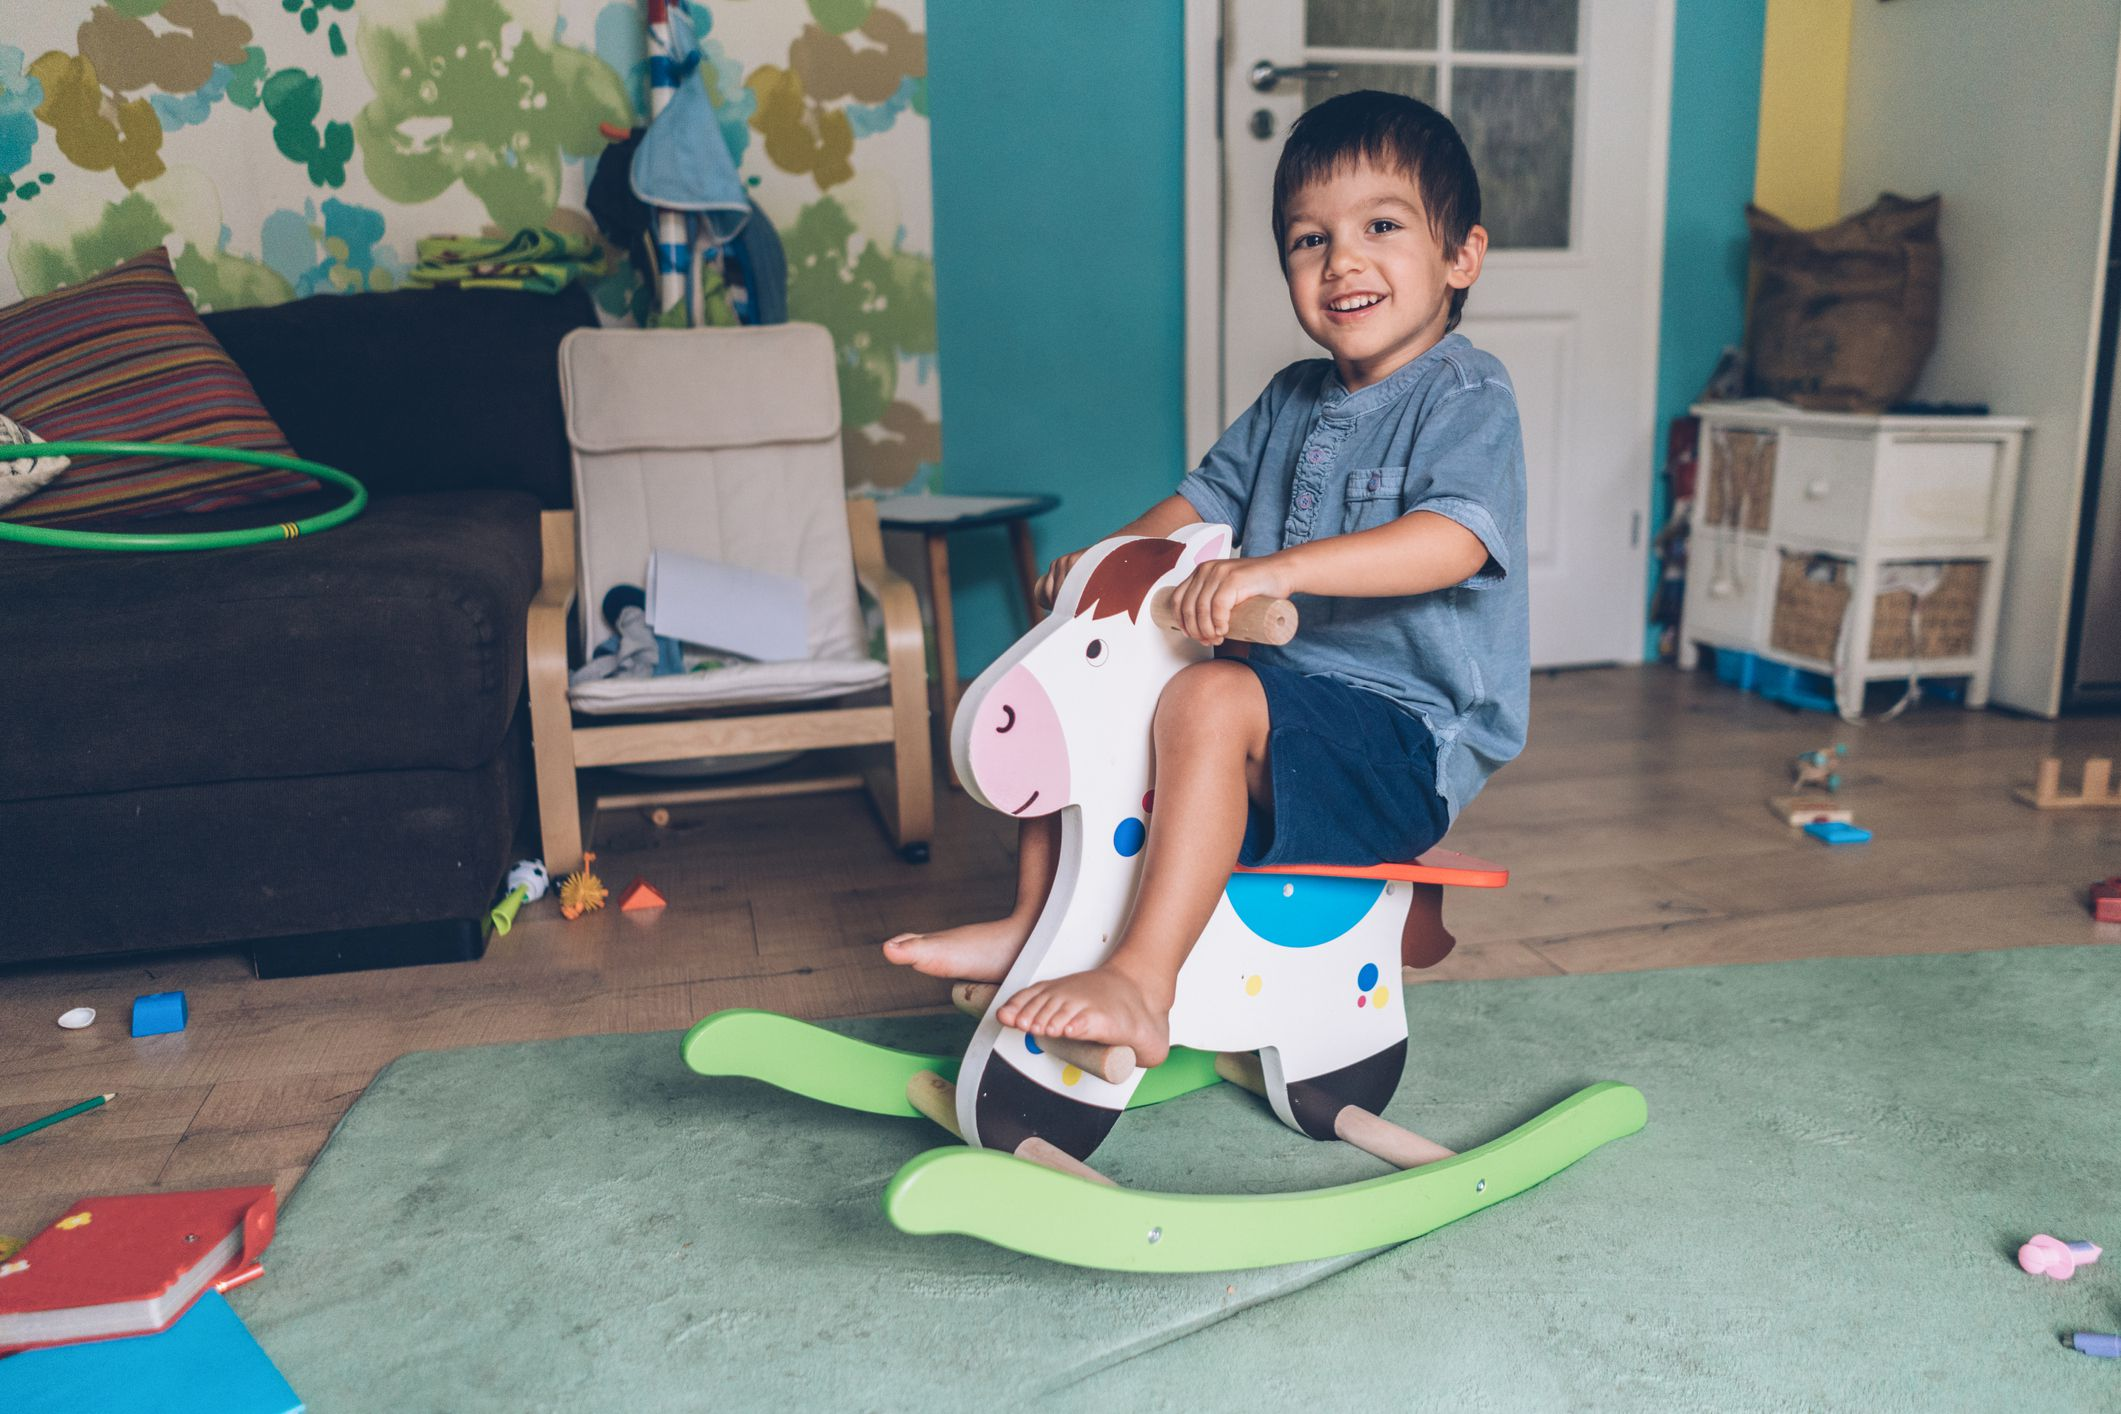 54b609ff1a7 The 12 Best Ride-On Toys for Kids of 2019